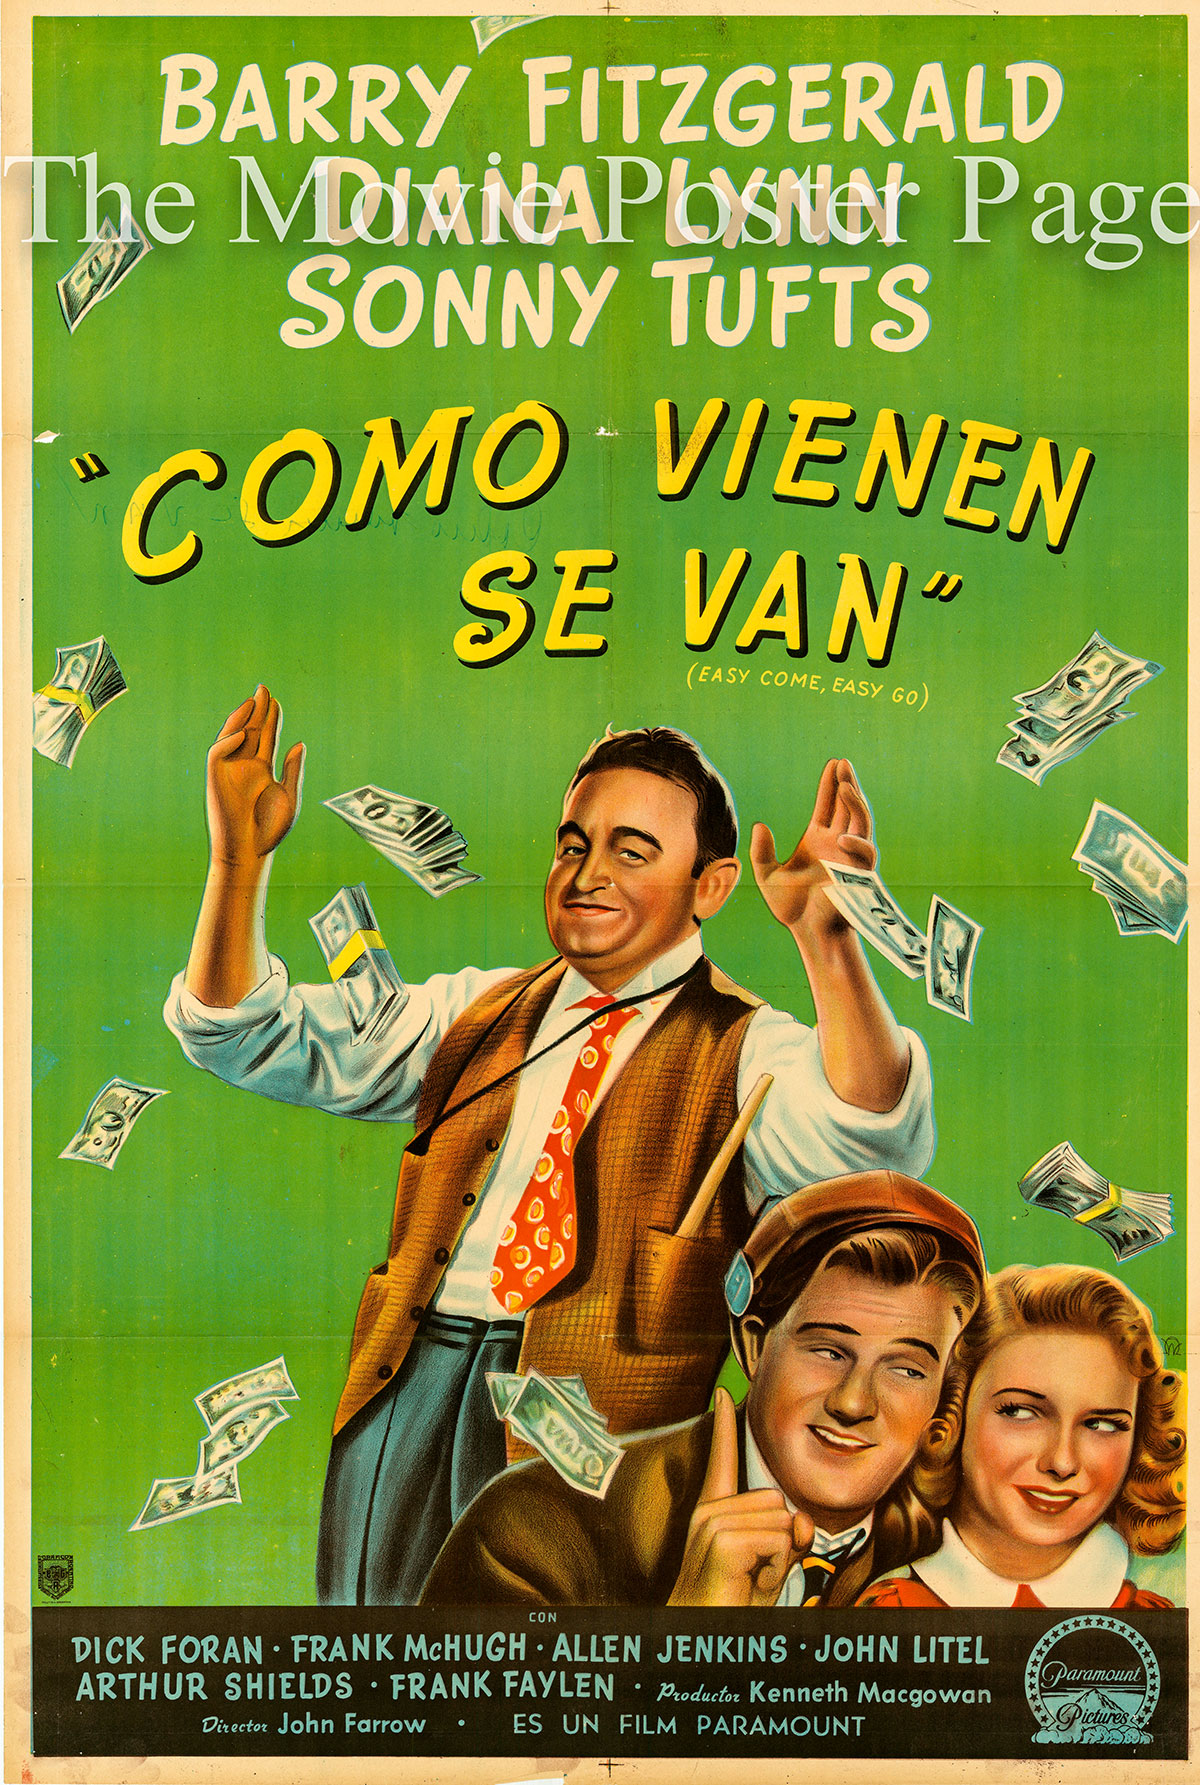 Pictured is an Argentine promotional poster for the 1947 John Farrow Film Easy Come, Easy Go starring Barry Fitzgerald as Martin L. Donovan.